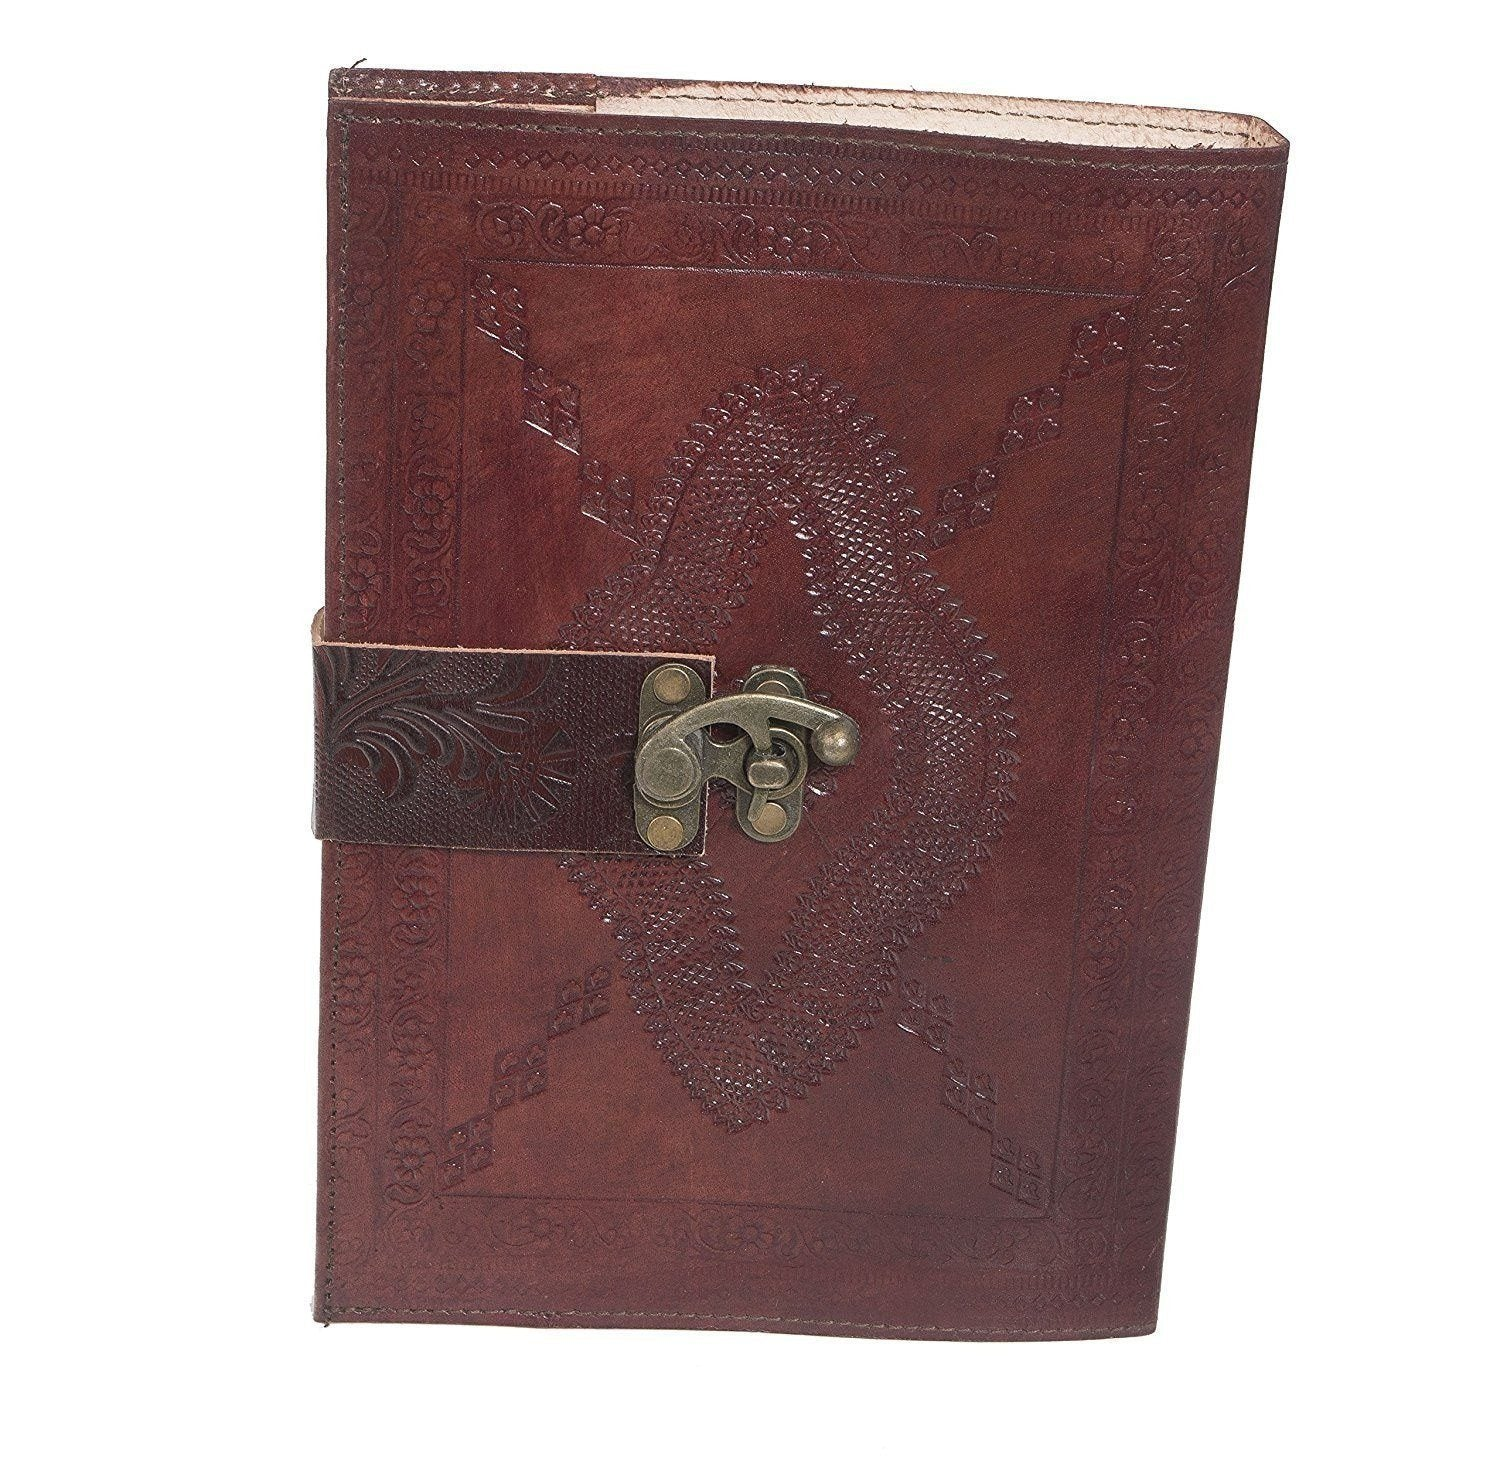 ININDIA House Pure Genuine Real Vintage Leather Handmadepaper Notebook Diary For Office Home To Write Poem Daily Update - Brown Size Of 9*7